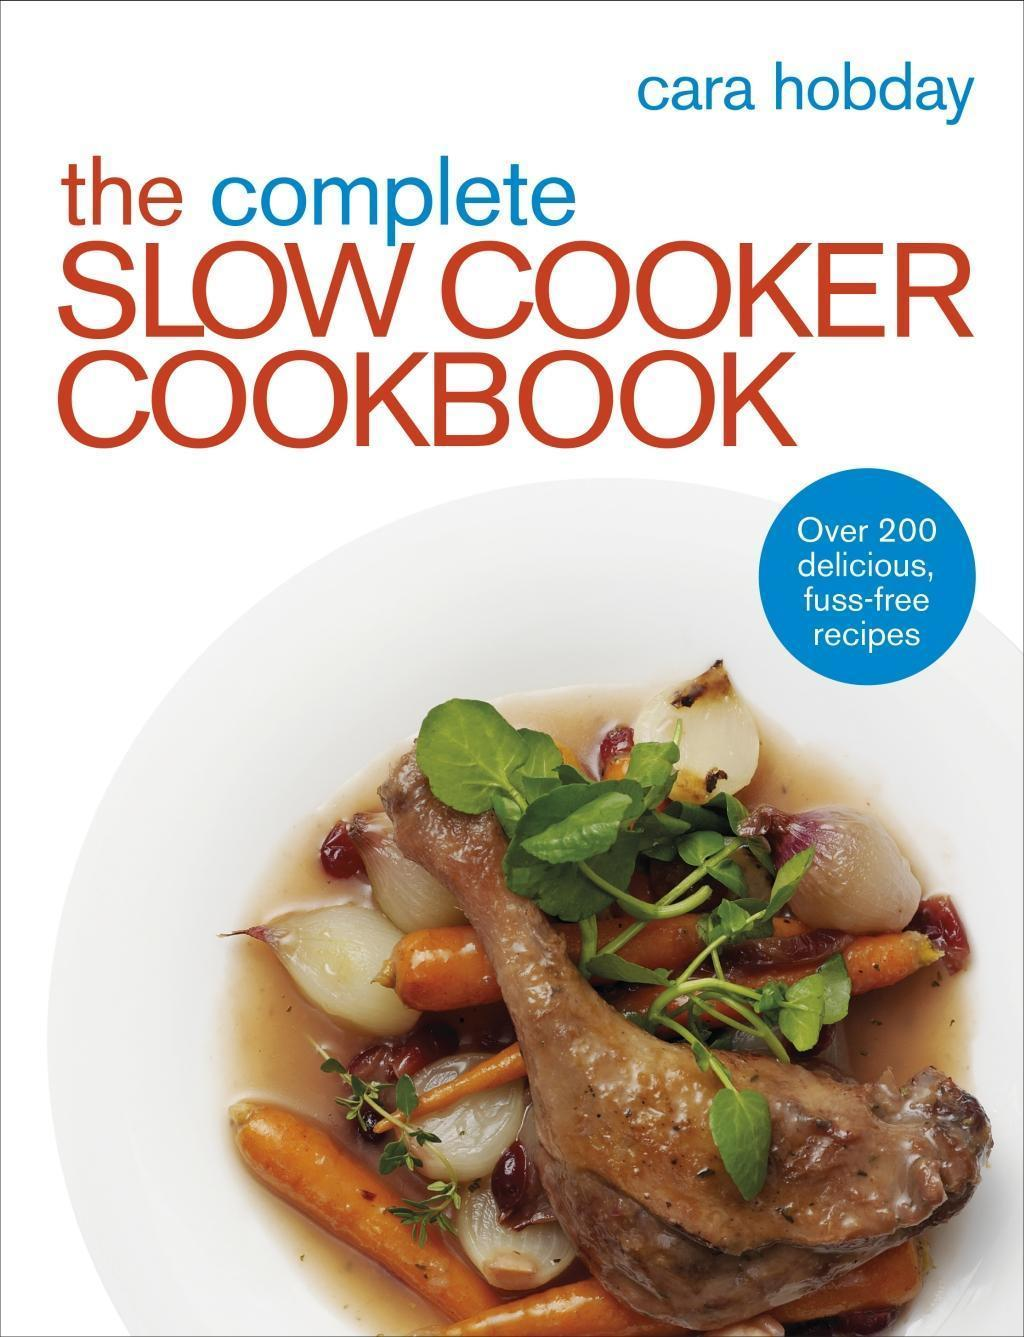 The Complete Slow Cooker Cookbook